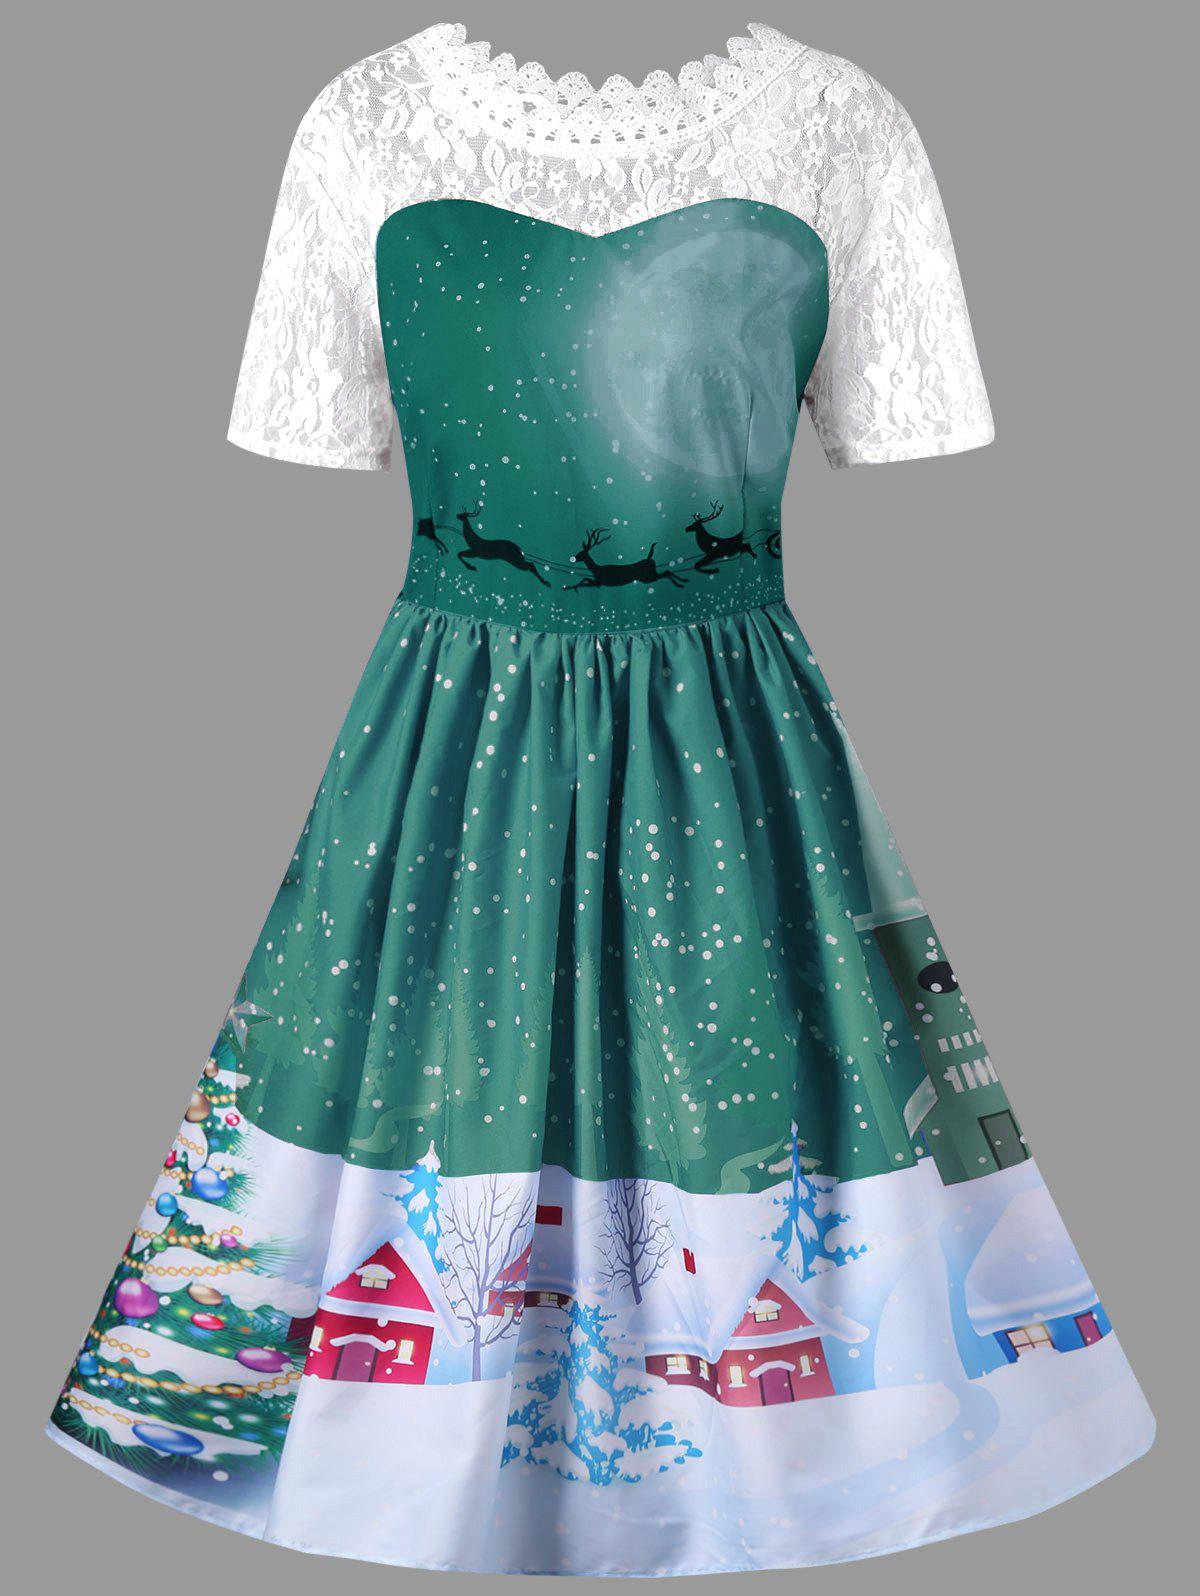 Christmas Plus Size Lace Yoke Vintage Swing DressWOMEN<br><br>Size: XL; Color: GREEN; Style: Vintage; Material: Polyester,Spandex; Silhouette: A-Line; Dresses Length: Knee-Length; Neckline: Round Collar; Sleeve Length: Short Sleeves; Embellishment: Lace; Pattern Type: Animal,Floral; With Belt: No; Season: Fall,Spring,Summer; Weight: 0.3200kg; Package Contents: 1 x Dress;